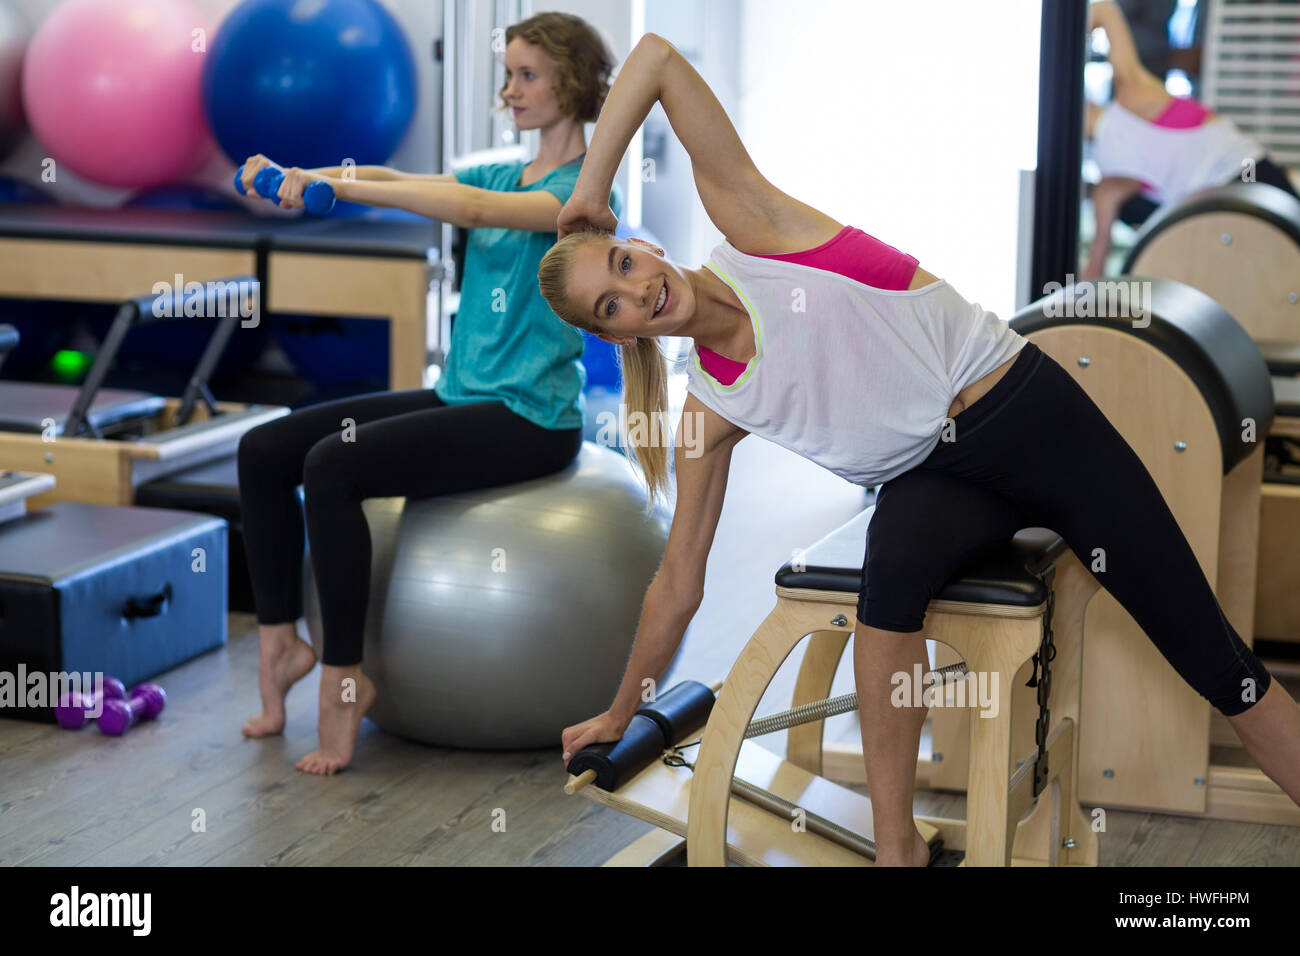 Woman exercising on reformer in gym - Stock Image